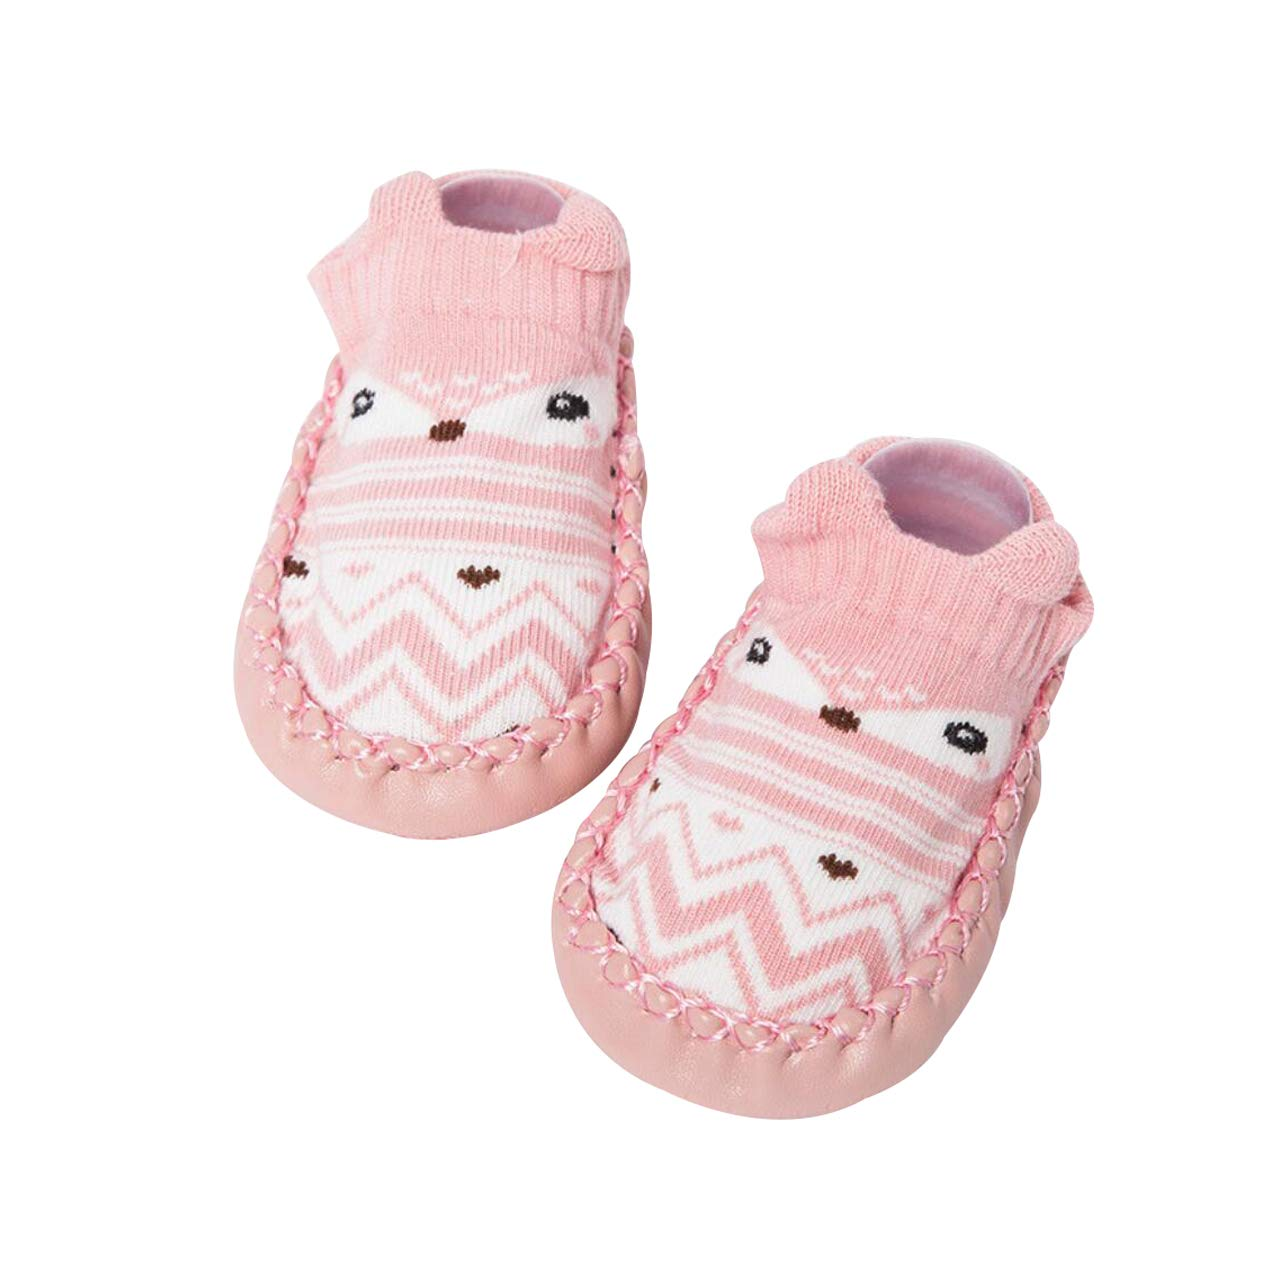 DEBAIJIA Baby Shoes Cotton Cloth Material Toddler Shoes Anti-Slip Animals Pattern Fashion Casual Prewalker Shoes Suitable for 6-36 Months Infant Slip-on Sporty Trainers Unisex